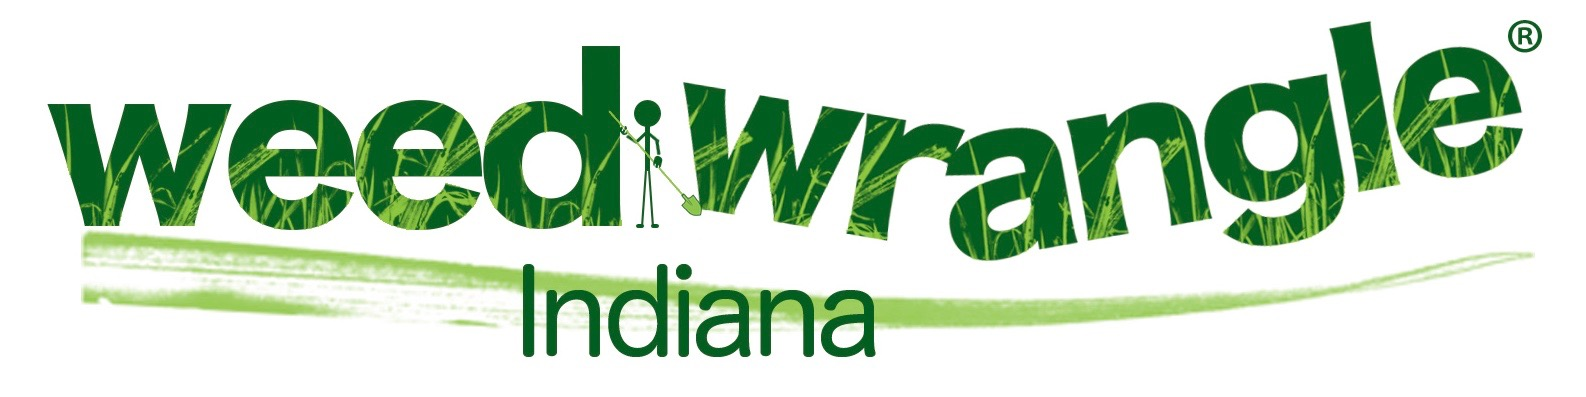 WeedWrangle_Indiana copy (2).jpg